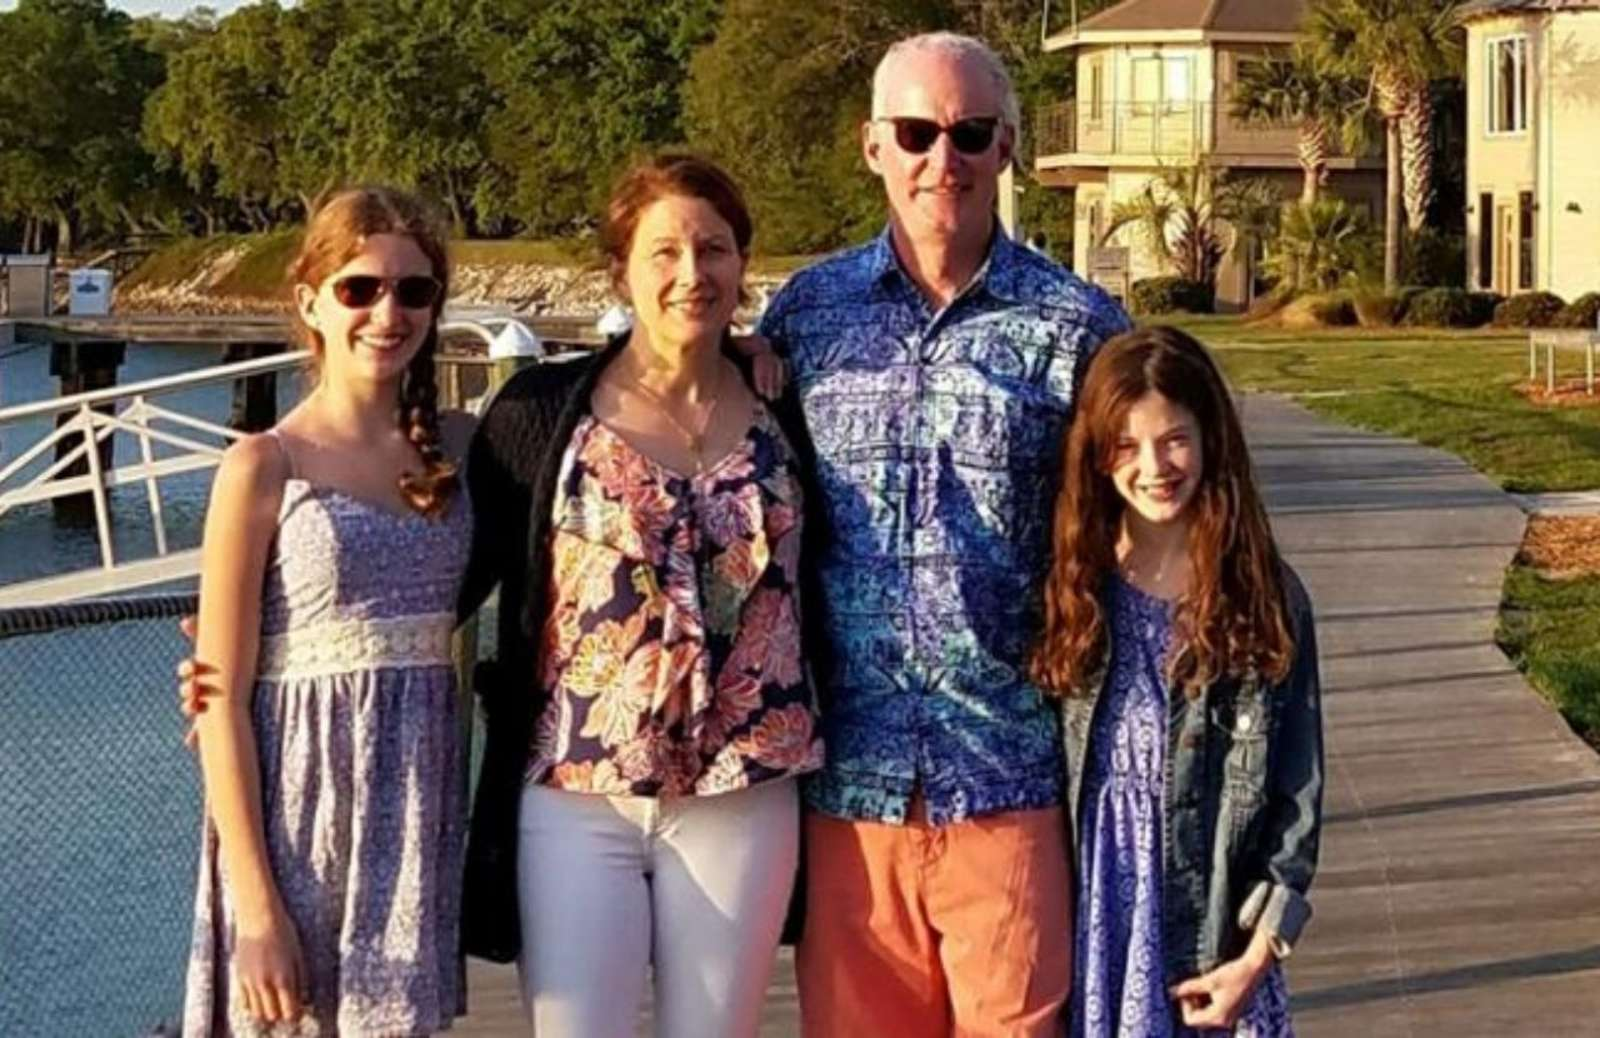 iRelaunch team member Sarah Mills standing with her husband and two daughters